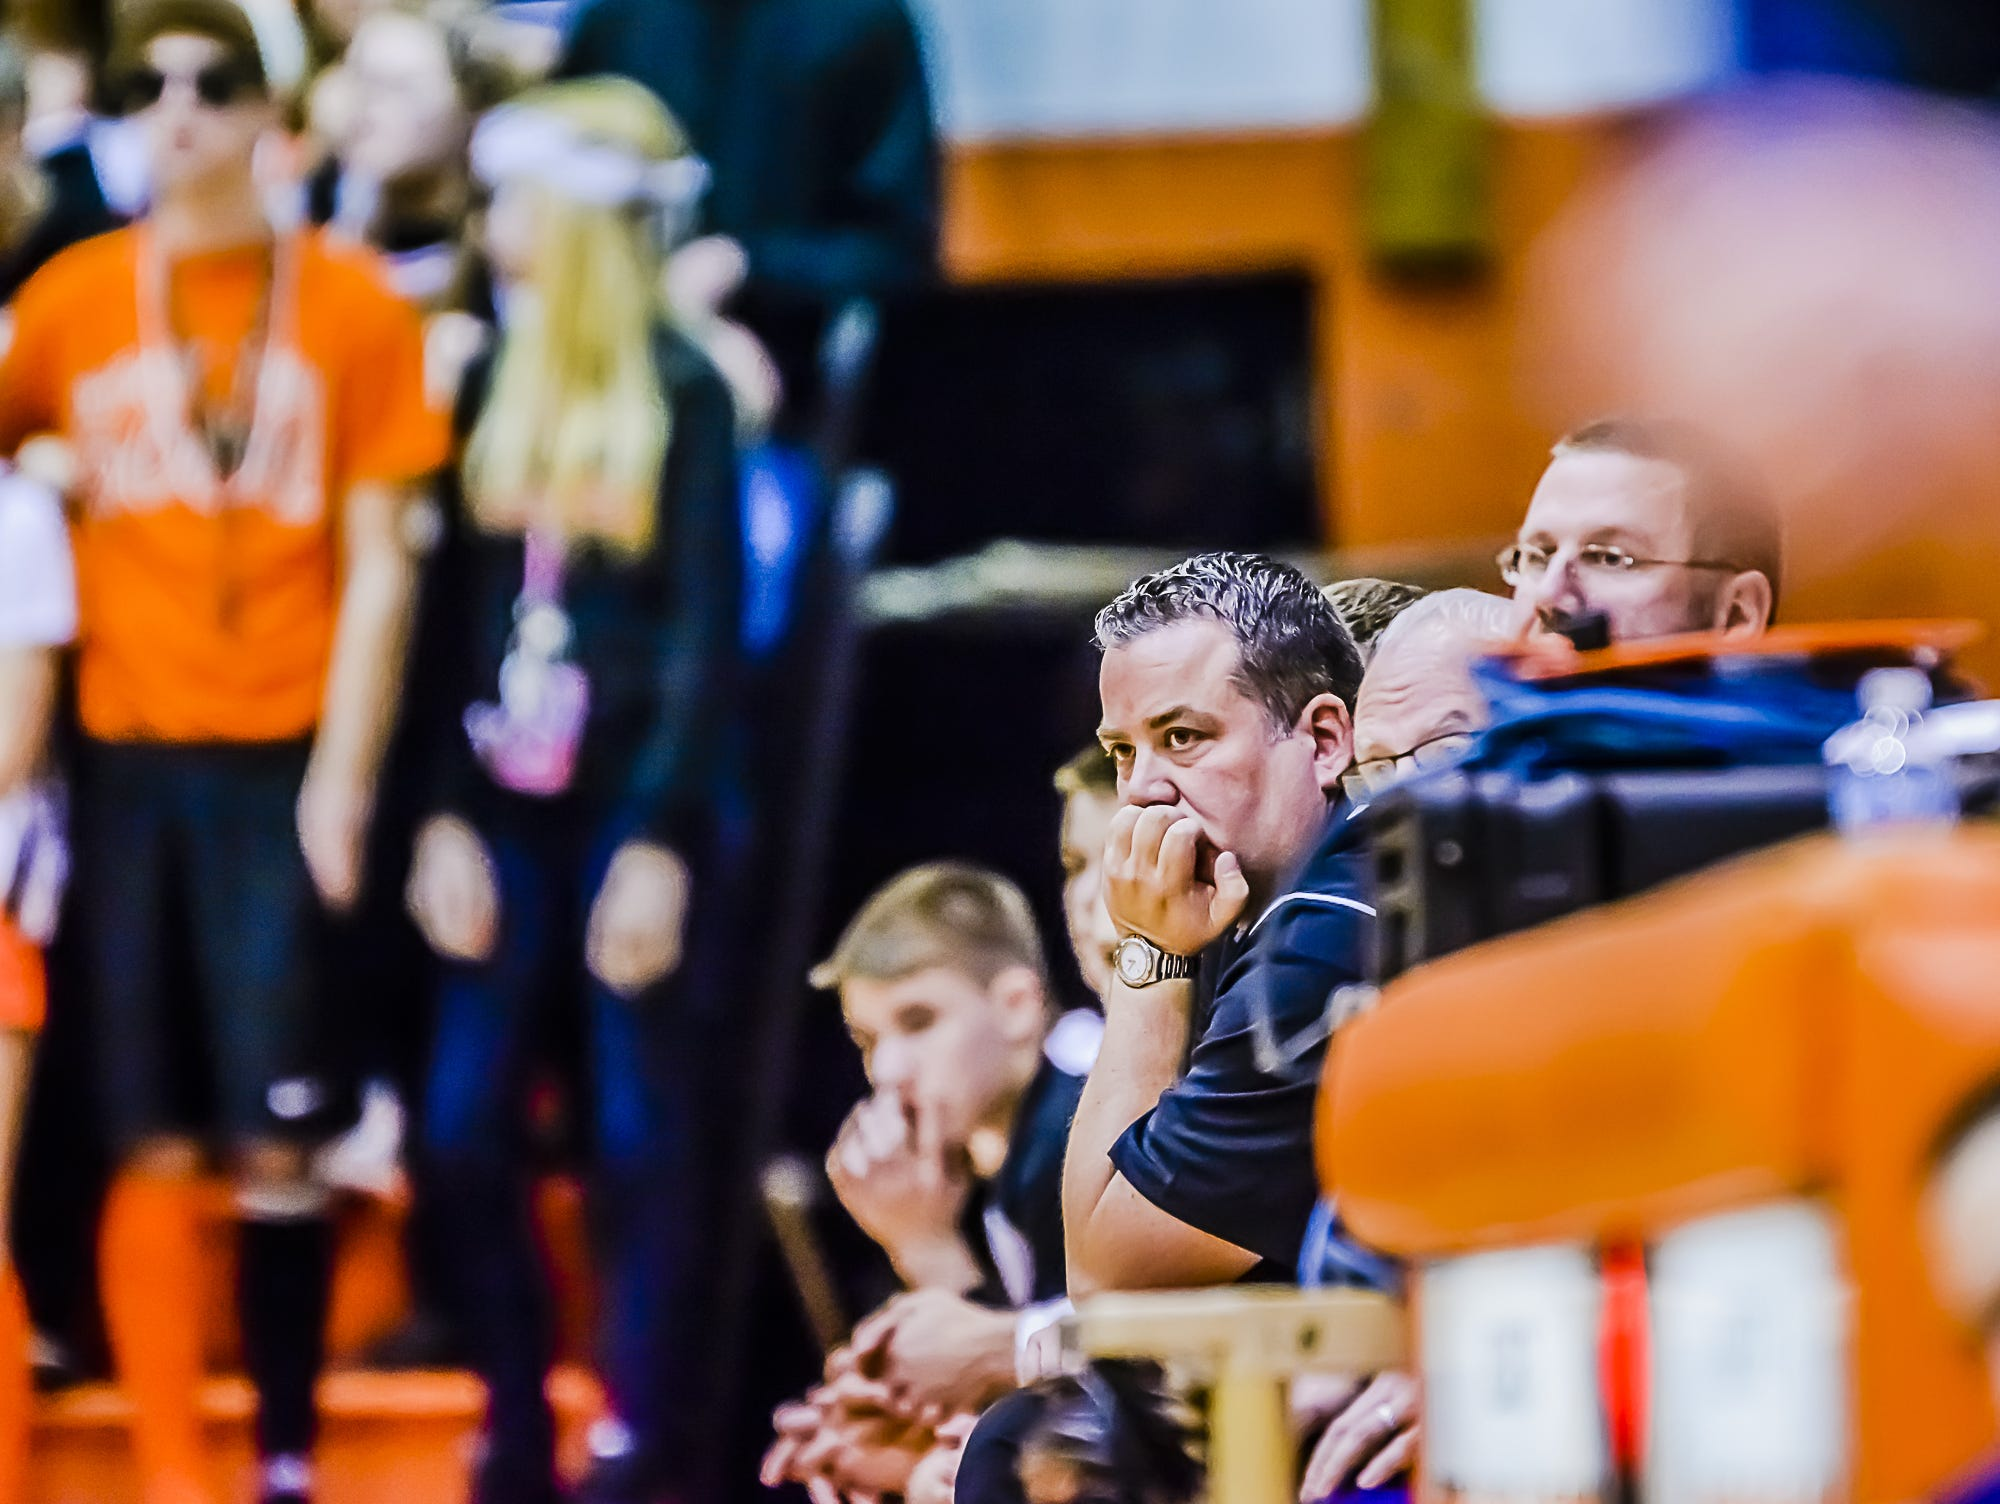 Former Charlotte Boys Basketball Head Coach Steve Ernst watches Godwin Heights pad their lead over his team during a regional final game last March in Charlotte. Ernst resigned on Monday.